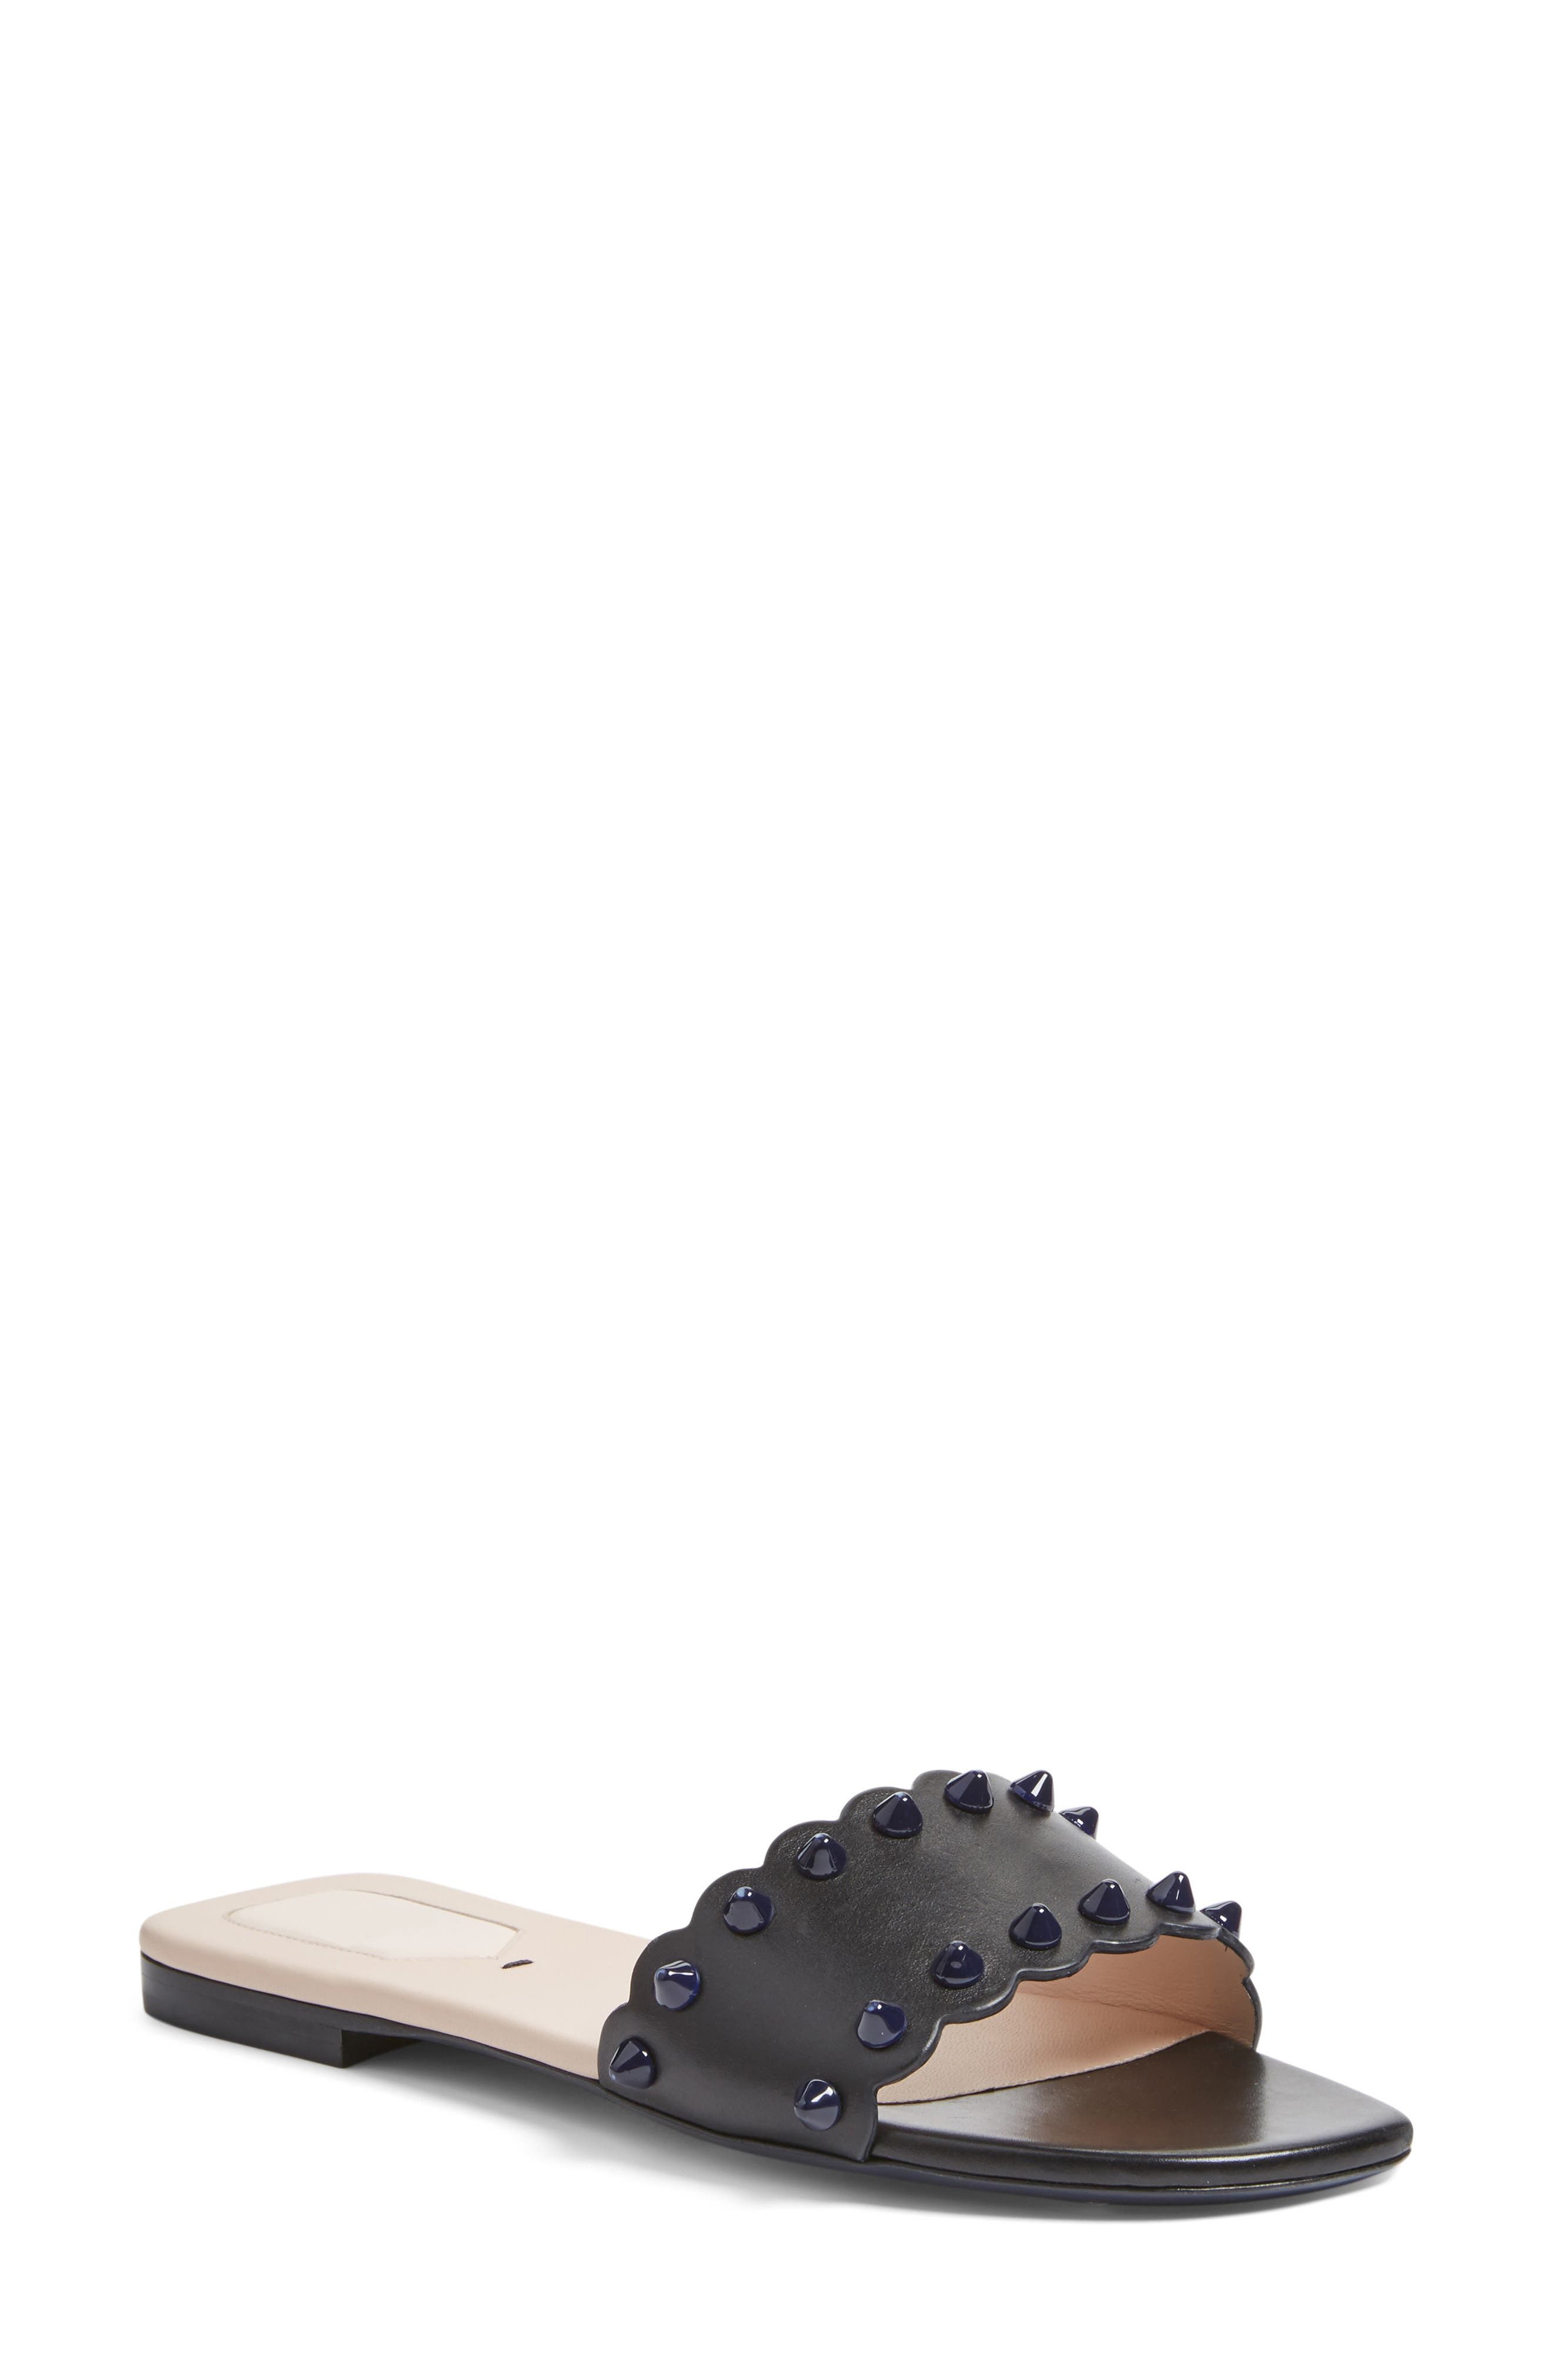 Fendi Studded Slide Sandal (Women)